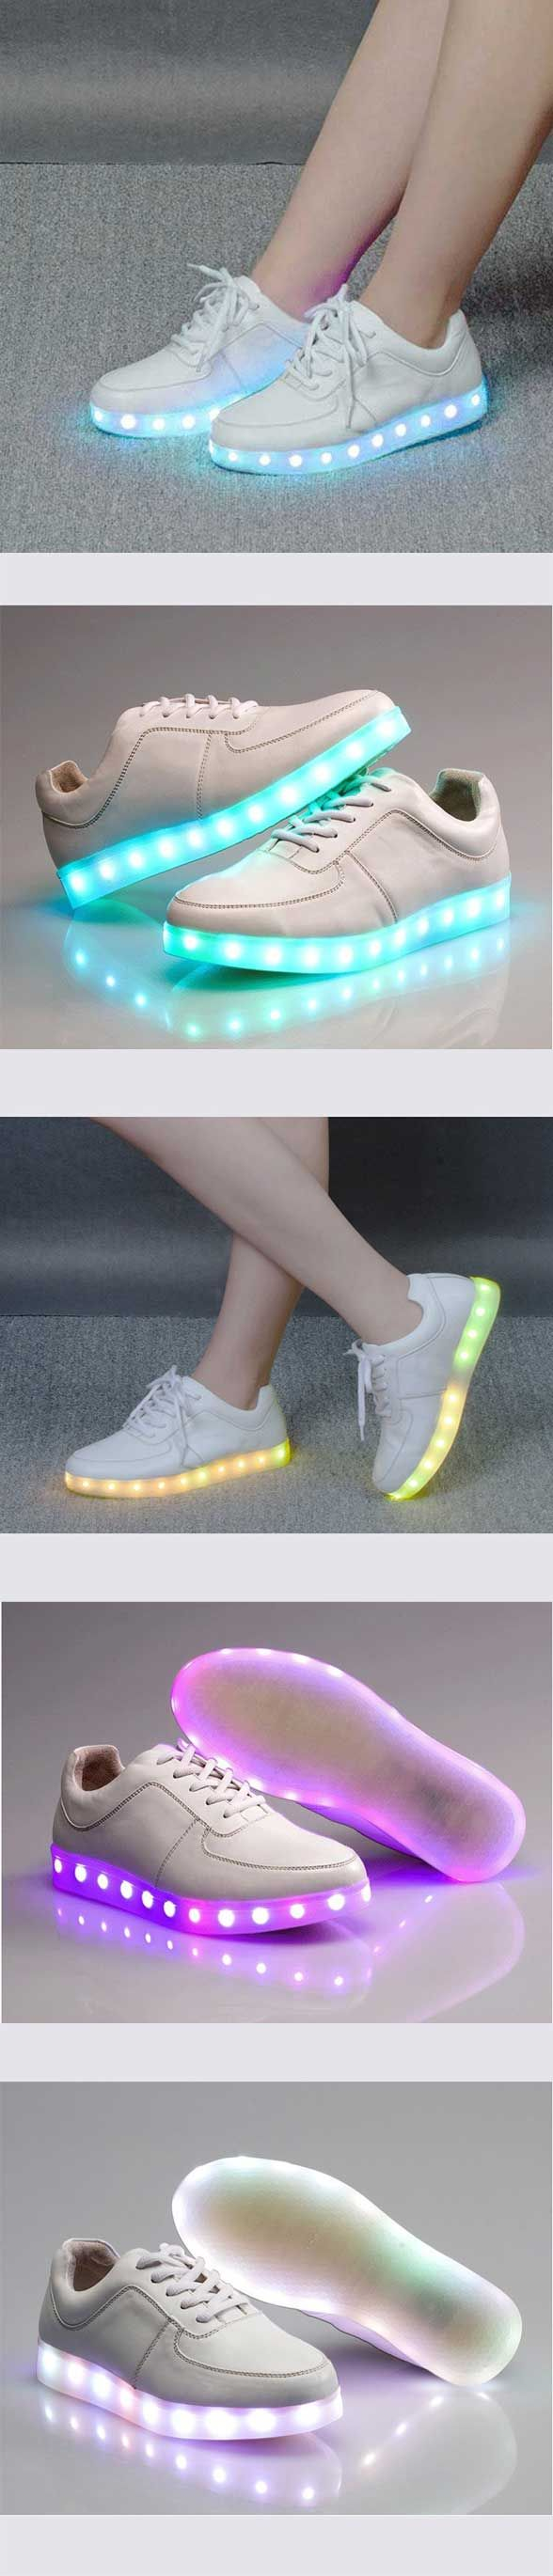 "Acever LED Sneakers - Let'em see your coming with these adult size LED shoes! So freakin awesome because I no longer have to be envious when my 6 year old nephew gets a new pair of kids light up shoes. Man I missed those! Another cool thing these LED shoes feature is that one pair has 7 color presets. Feel like a blue day? Make the shoes shine blue. Trying out that ""real men wear pink"" thing? Make'em pink! Easy as pushing a button. Comes in both Men's & Women's sizes…"